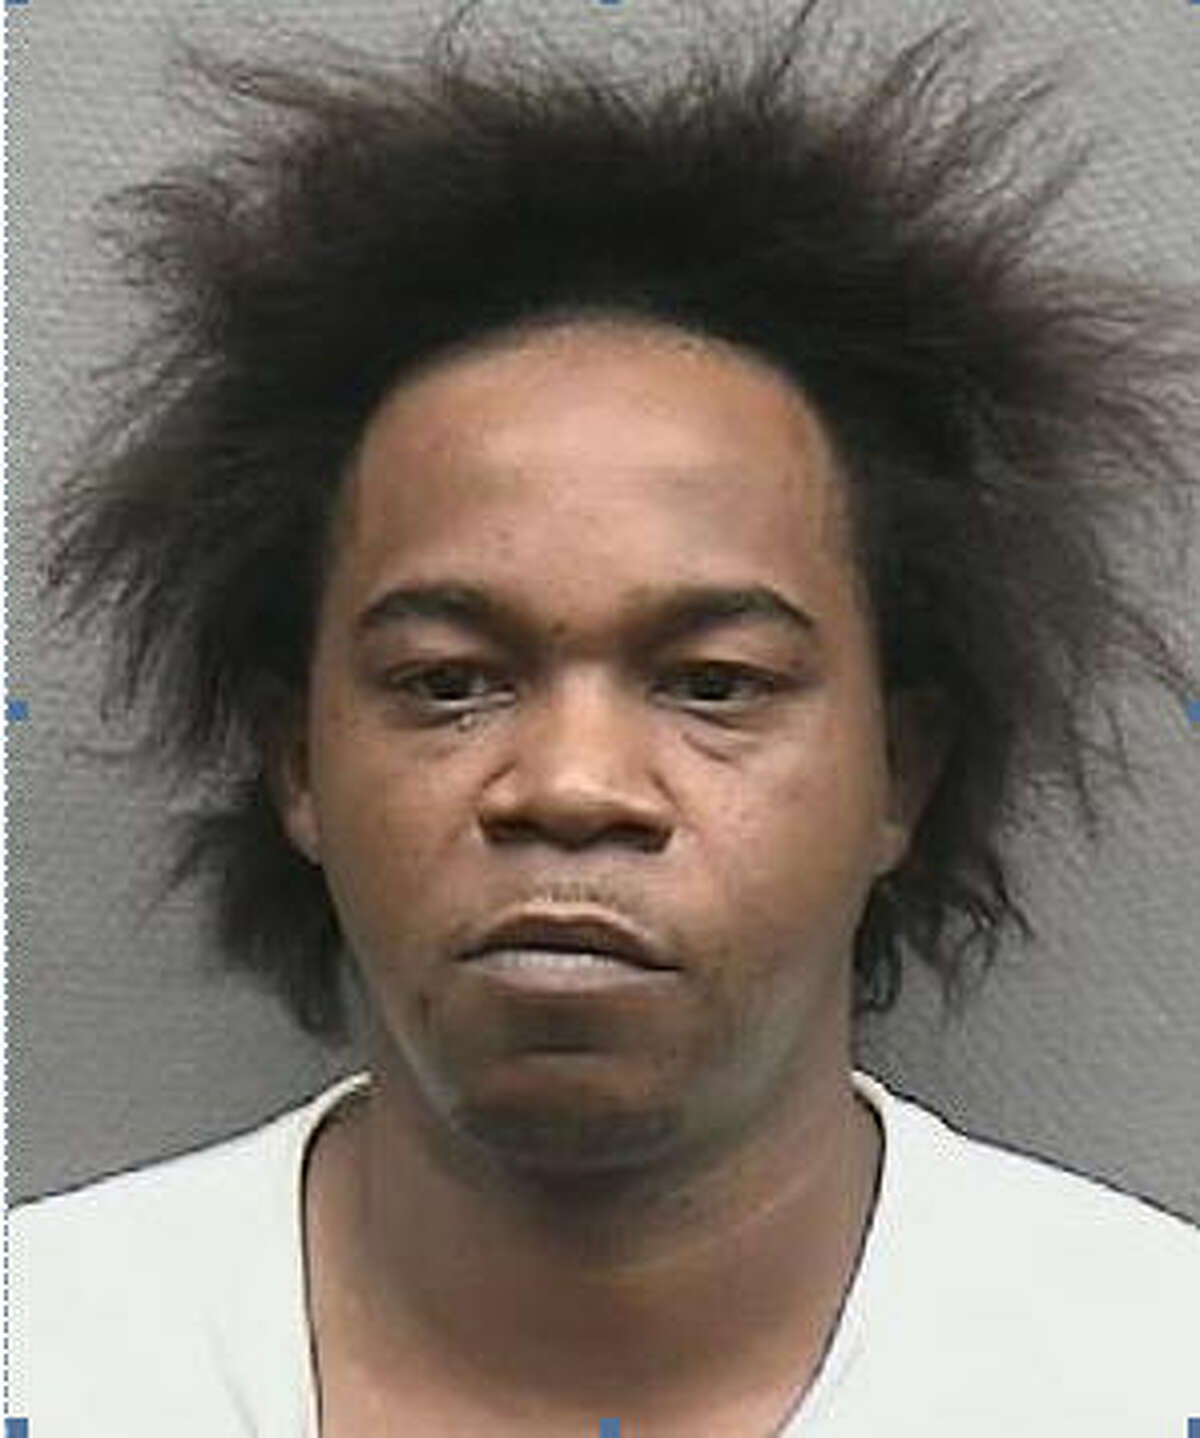 Walter Renard Jones, 31, is charged with injury to the elderly. He was arrested at a north Houston home where men said they were kept against their will.